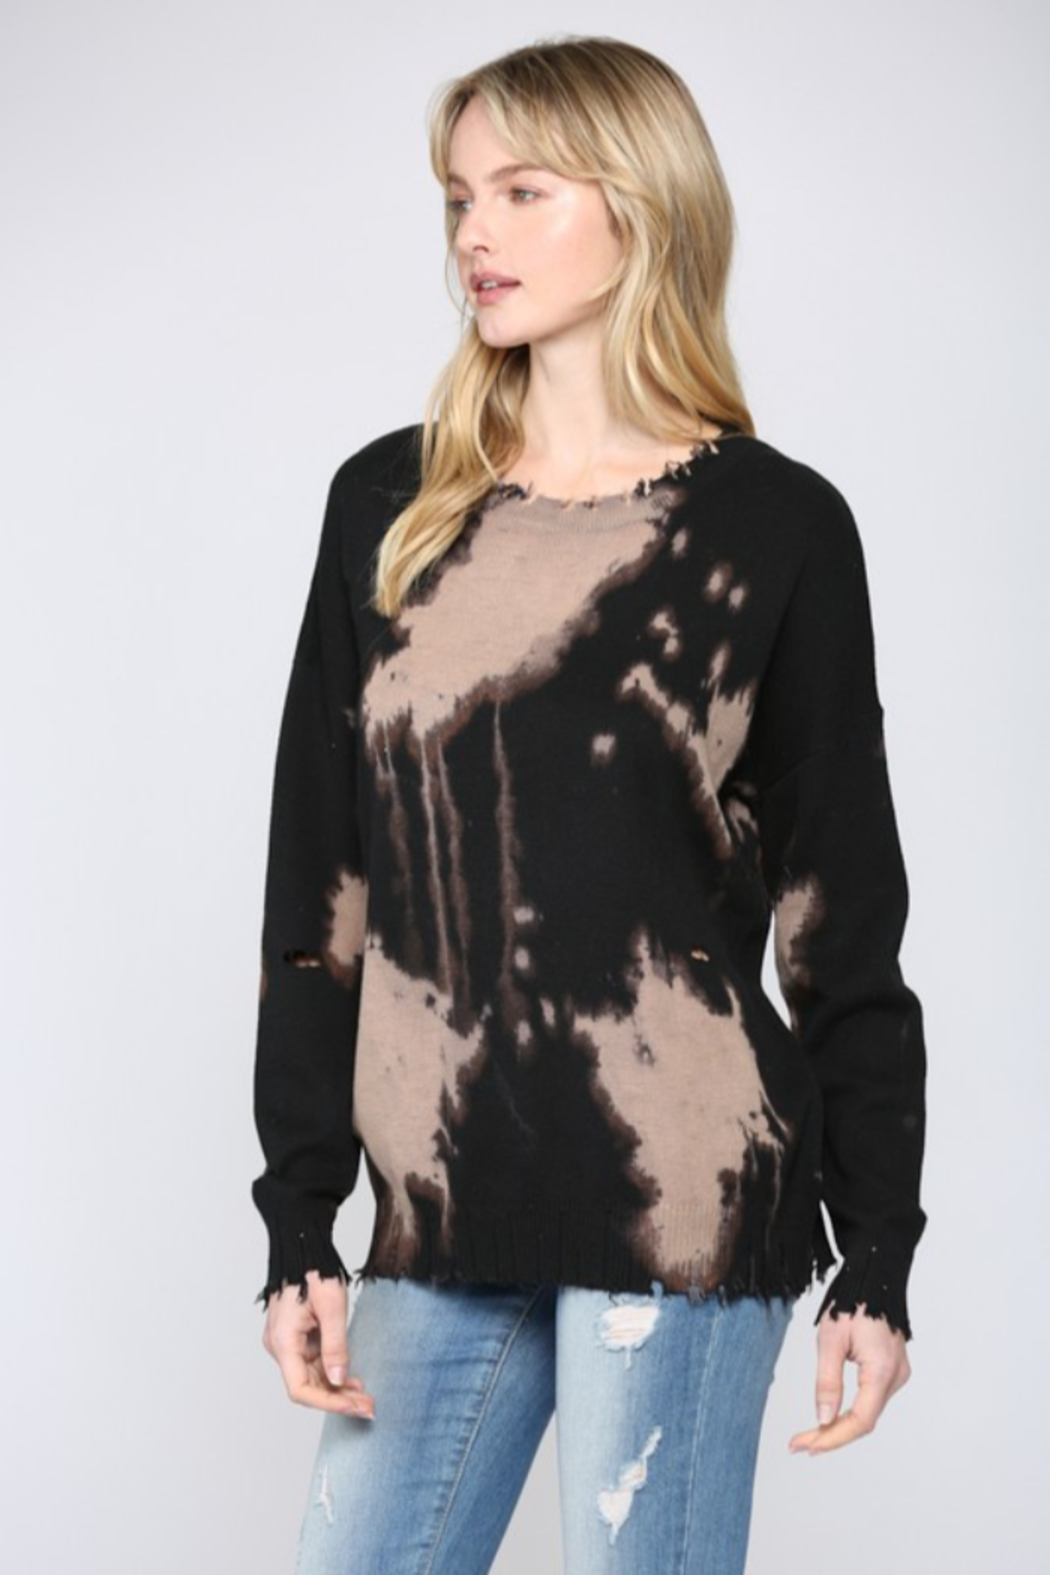 Fate Inc. Bleached Distressed Pullover Sweater Top - Front Full Image